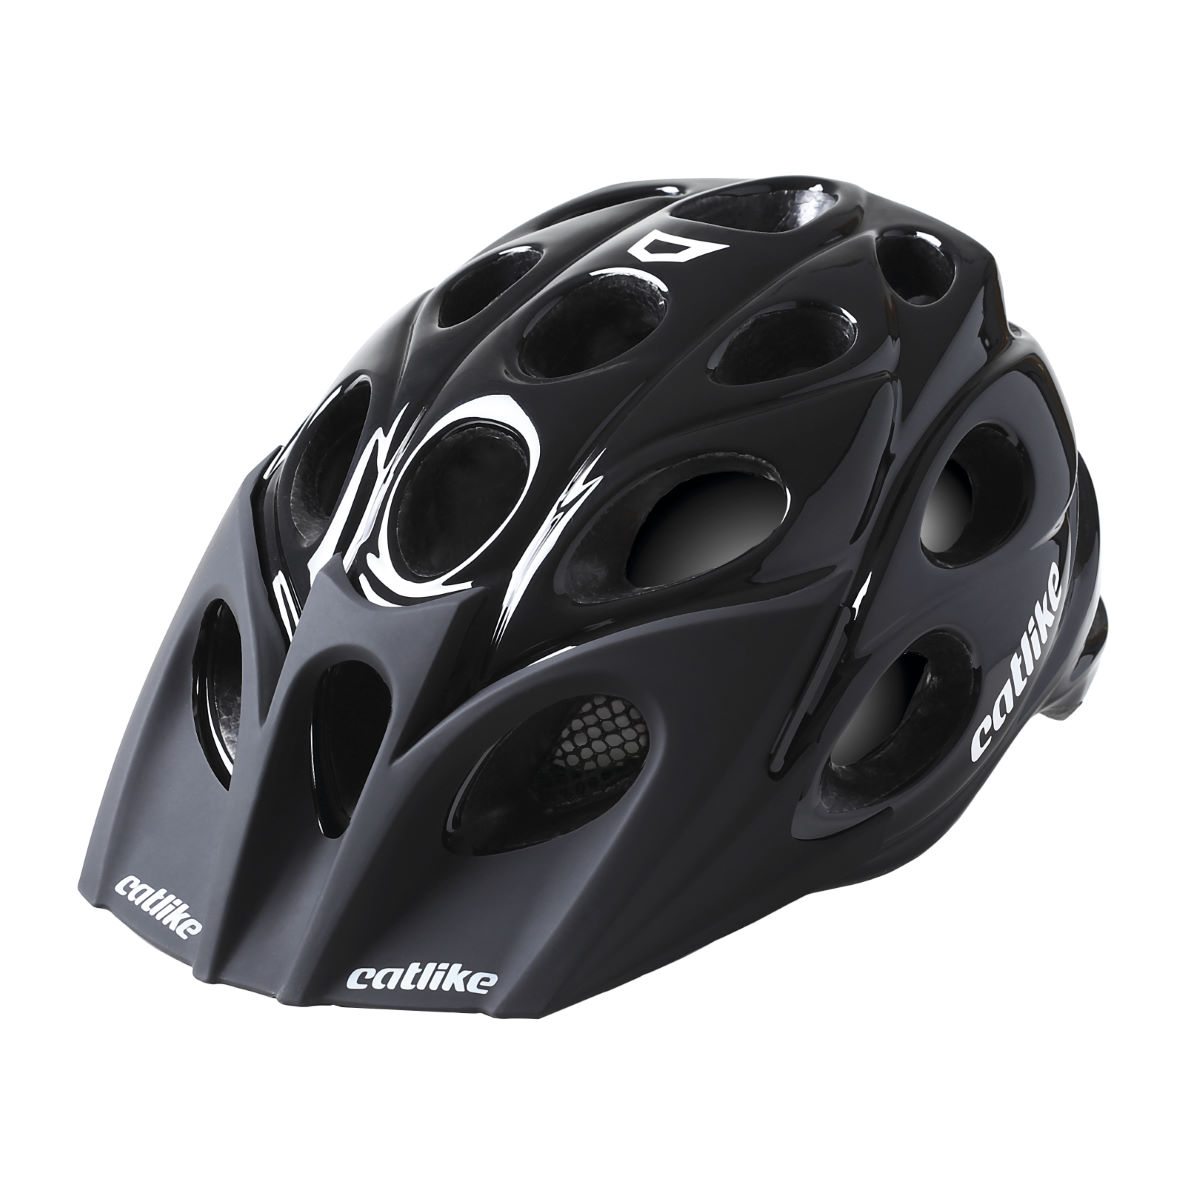 Casque VTT Catlike Leaf - L Black Glossy Casques